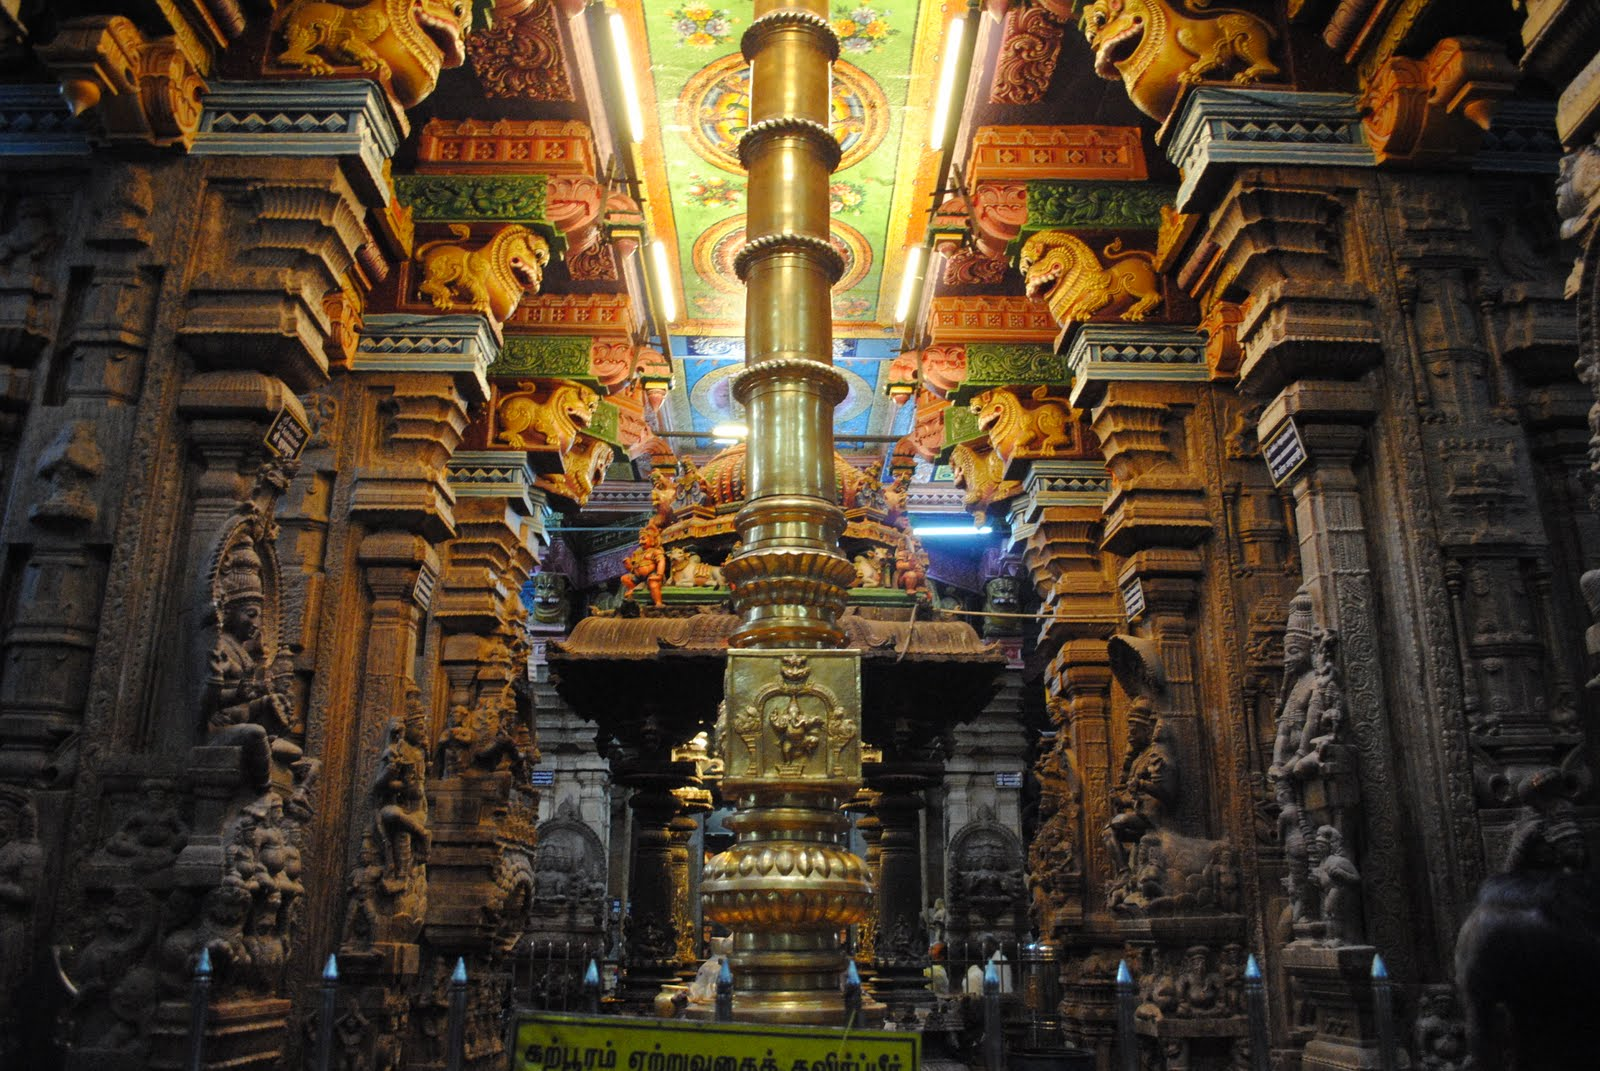 Meenakshi Temple, Madurai | Shadows Galore